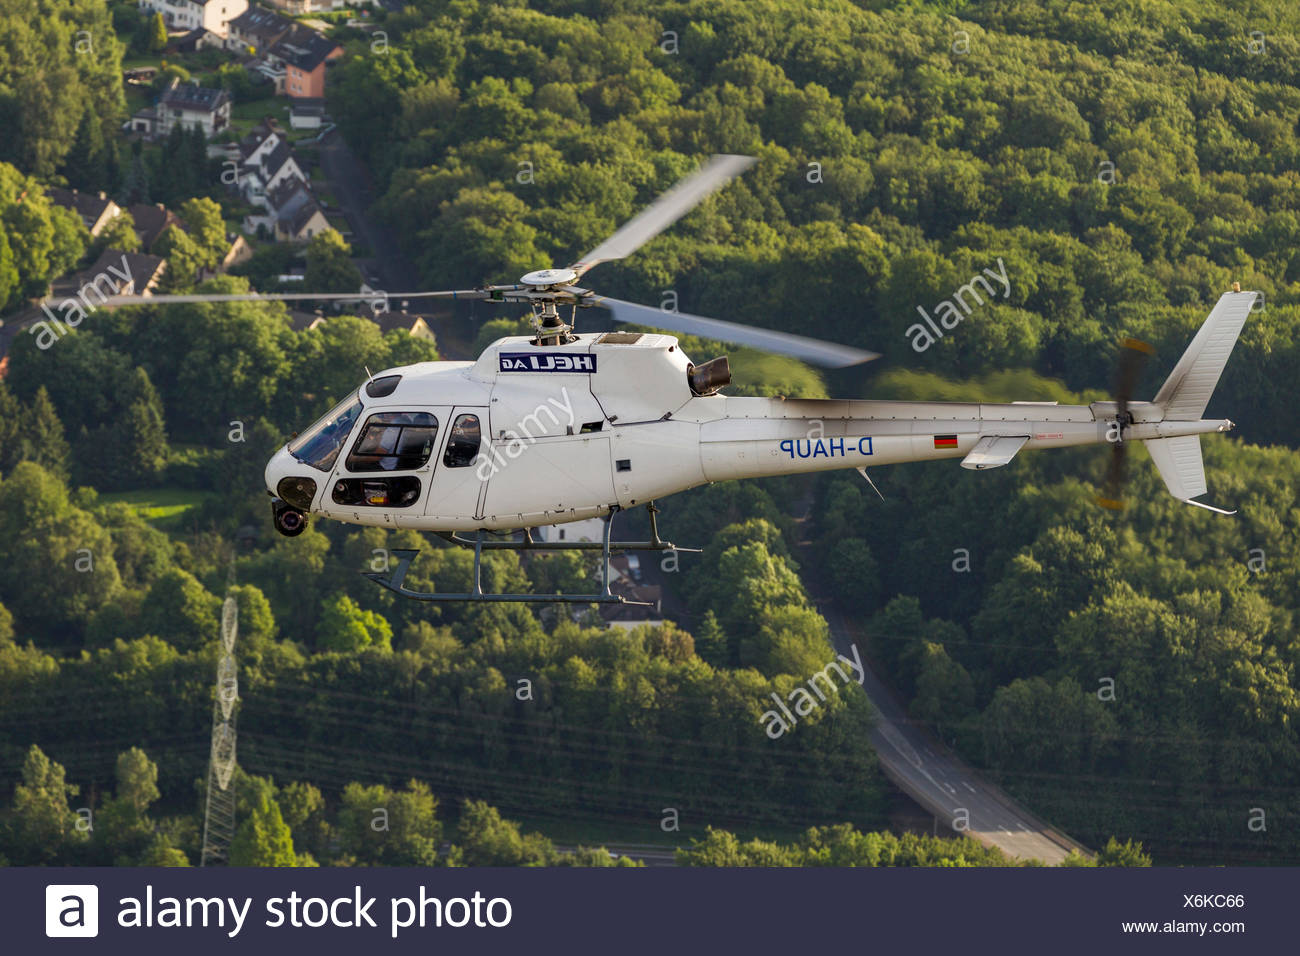 Aerial view, camera helicopter with video camera, Heli AG, high-resolution gyro-stabilised HD camera system, Witten, Ruhr Area - Stock Image